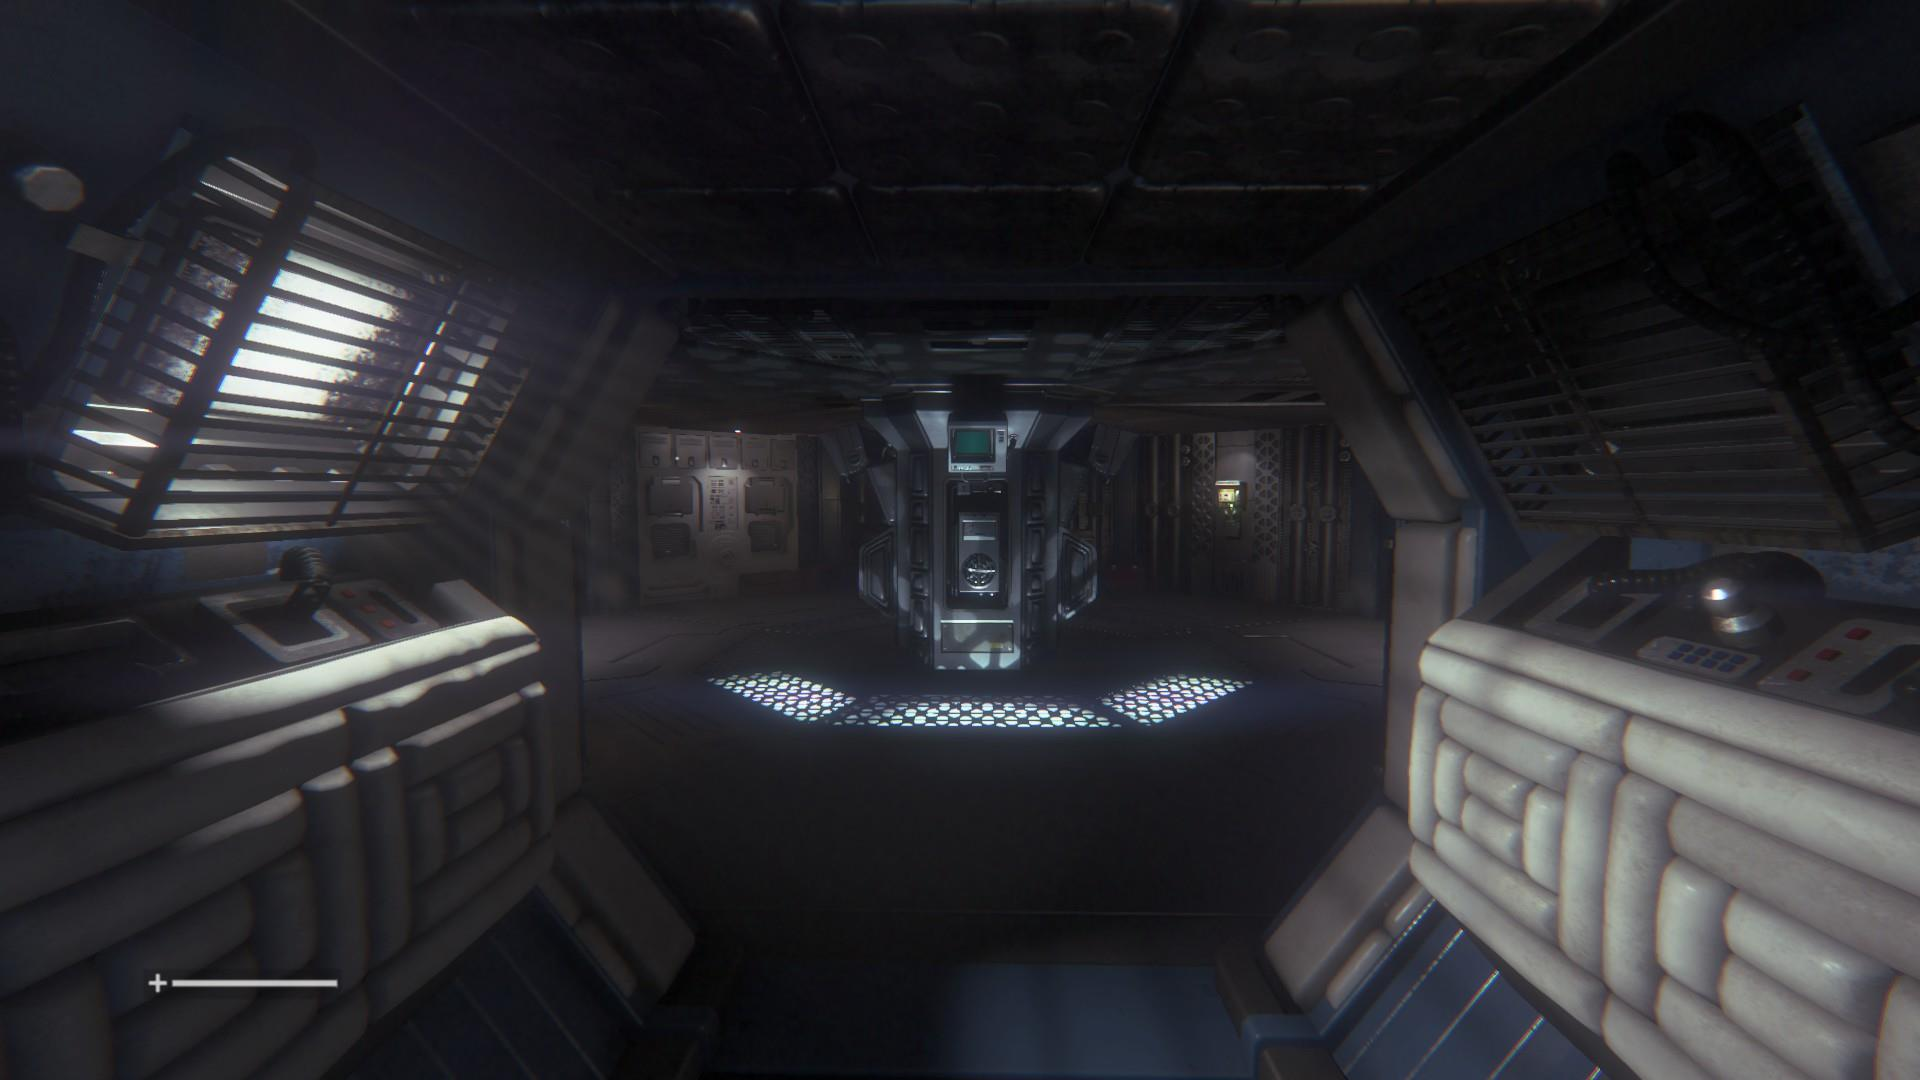 alien movie space station - photo #23